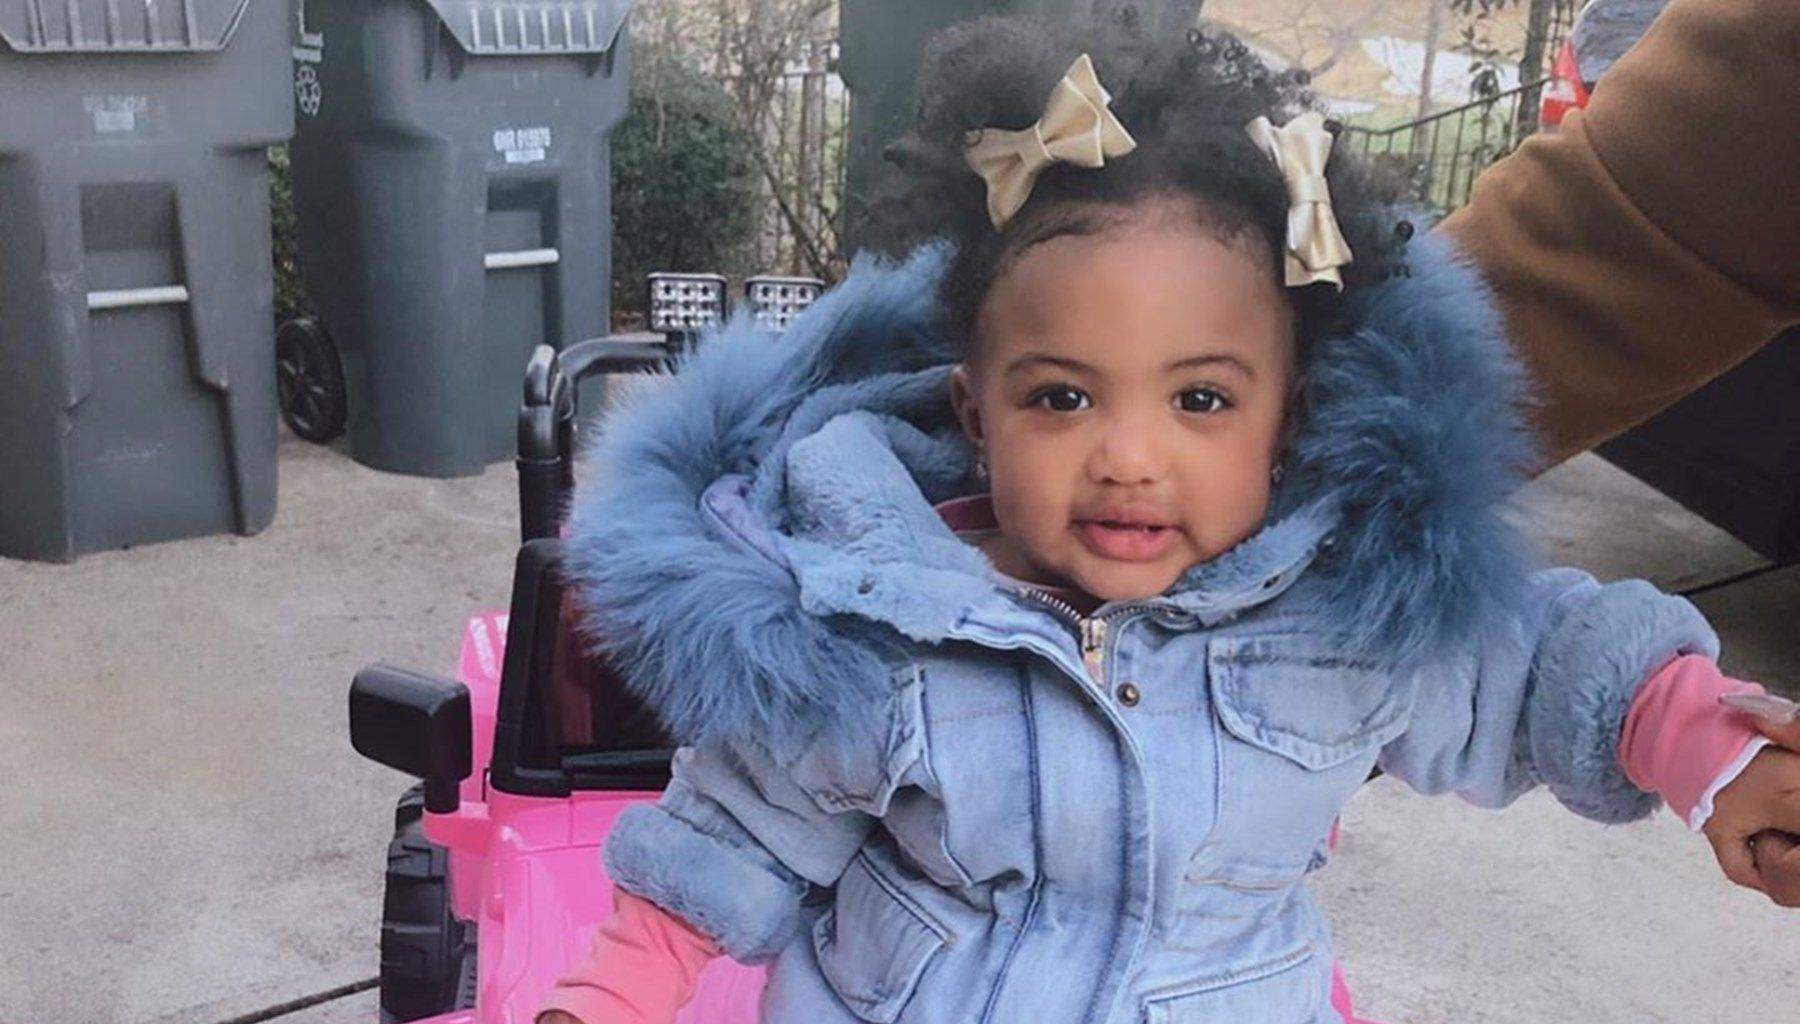 Porsha Williams' Video Featuring Her Baby Girl PJ Makes Fans' Day